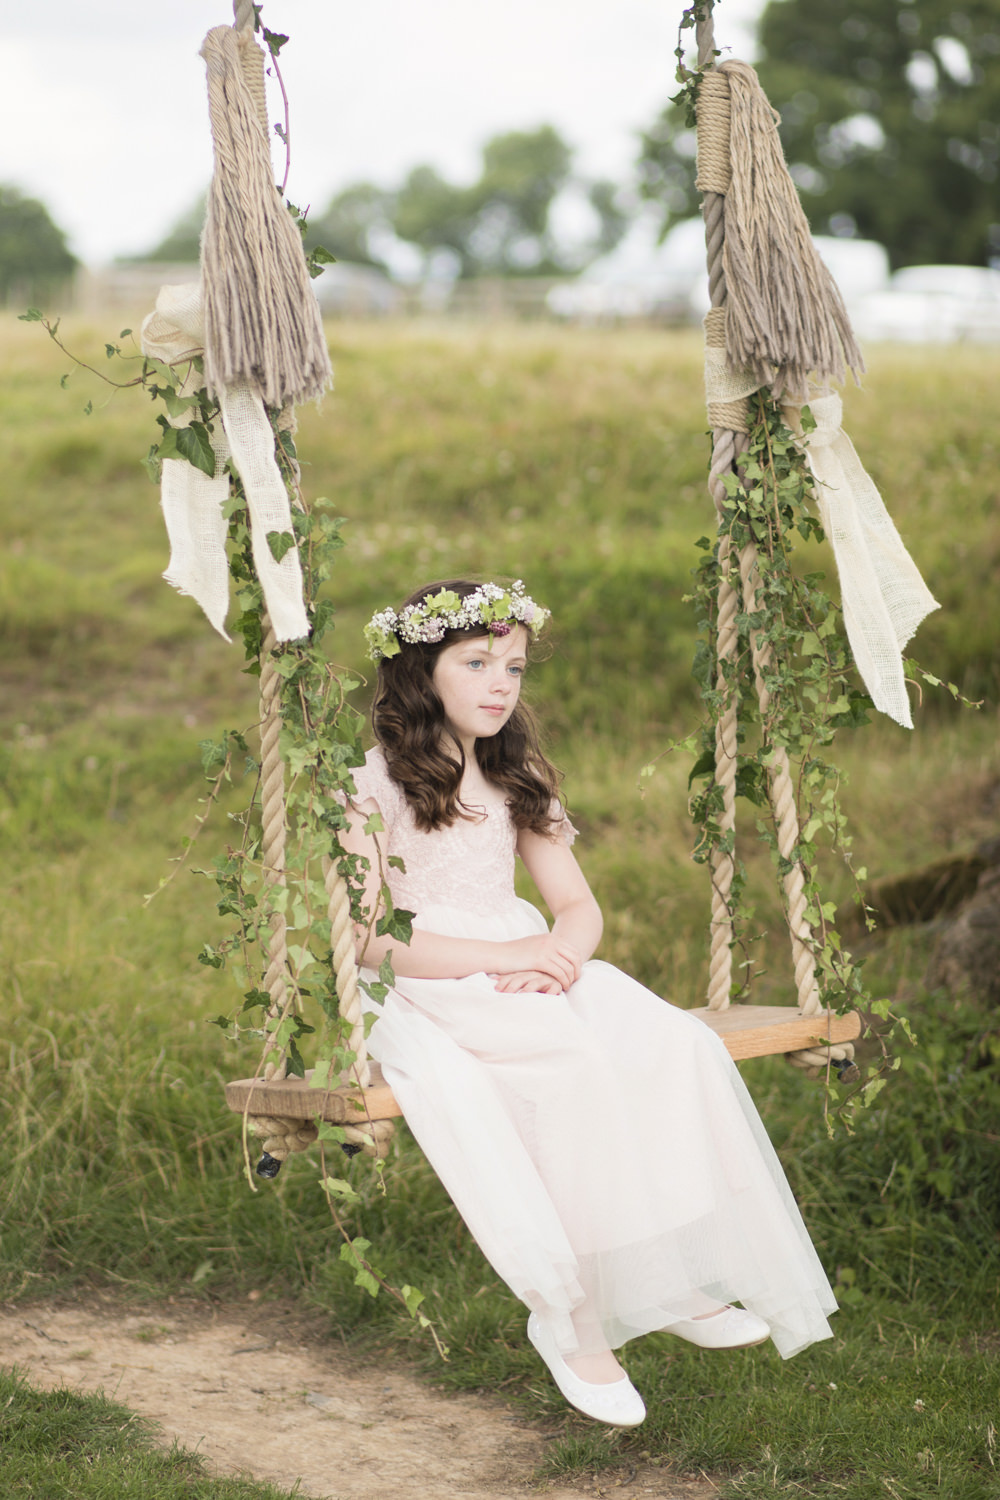 Flower Girl Dress Bridesmaid Crown Swing House Meadow Wedding Kerry Ann Duffy Photography